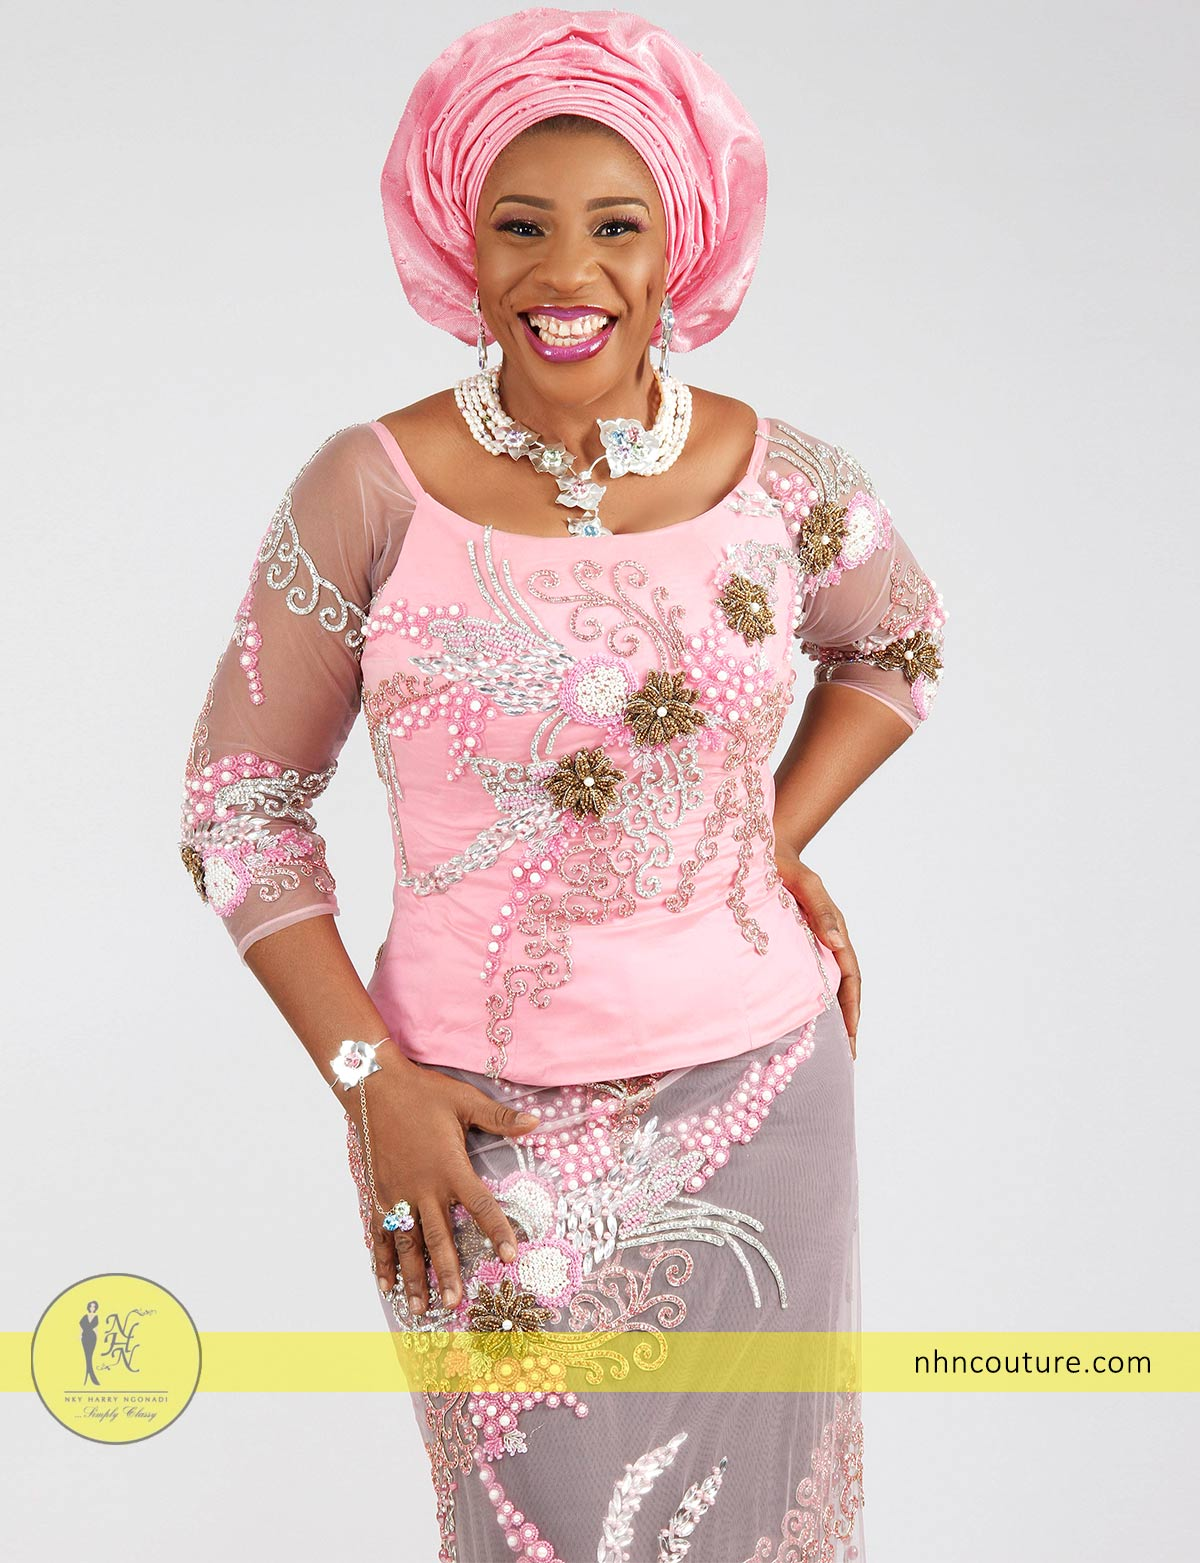 pink-sequined-fitted-top-and-wrapper_Nigerian-traditional-attire_asoebi_NHN-Couture_3